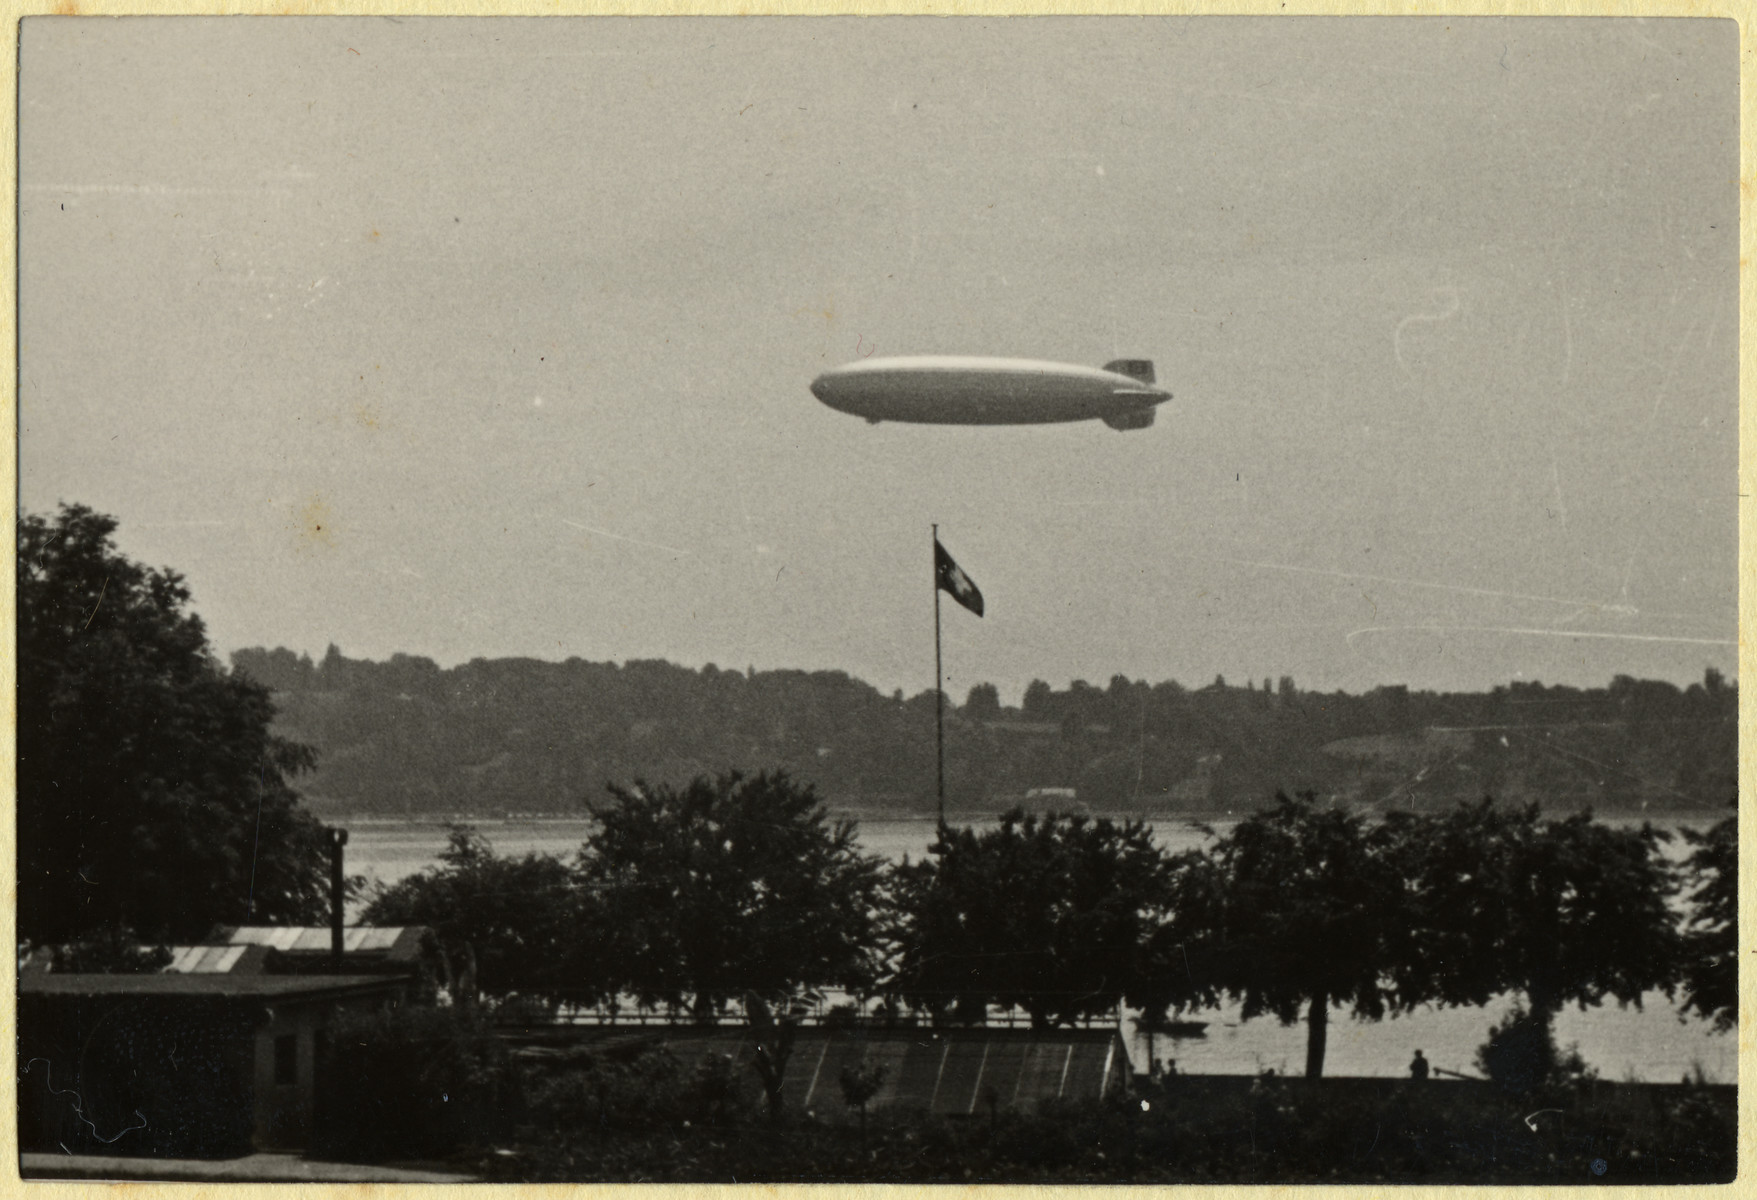 The Hindenburg blimp flies above a Nazi flag.